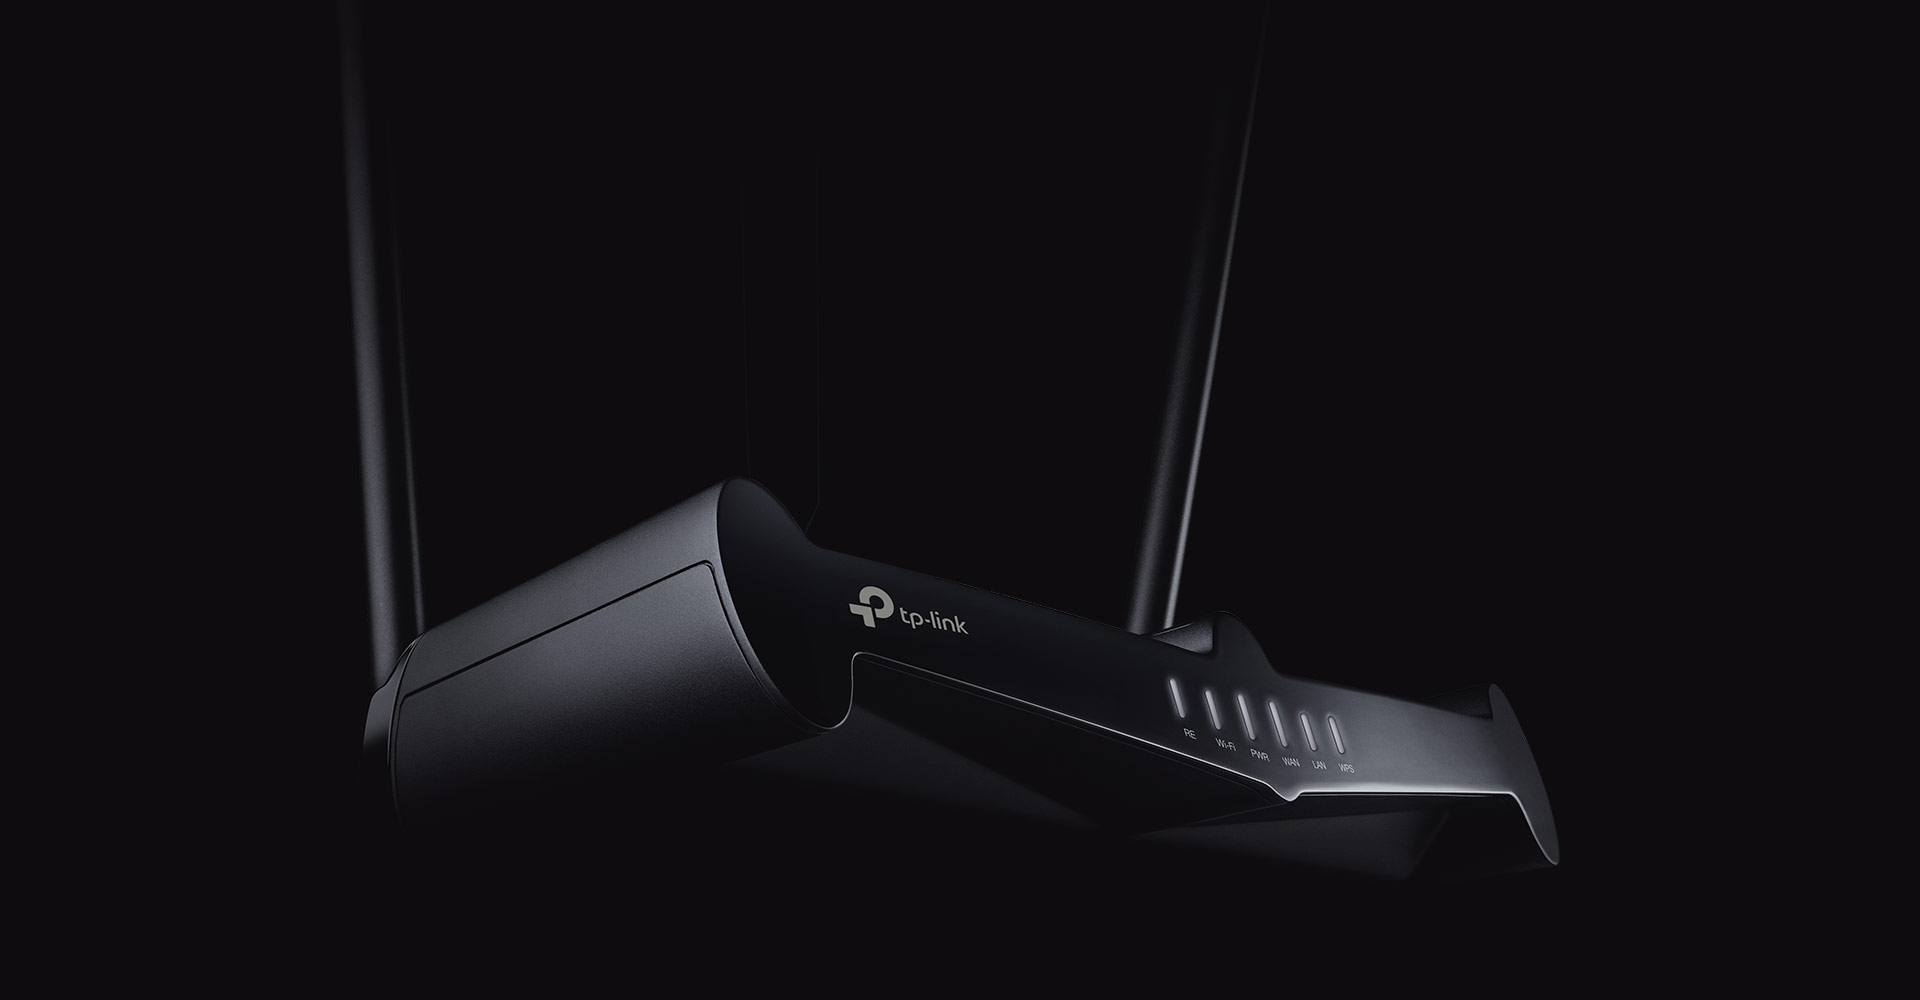 http://www.tp-link.vn/res/images/overview/TL-WR841HP/a.jpg